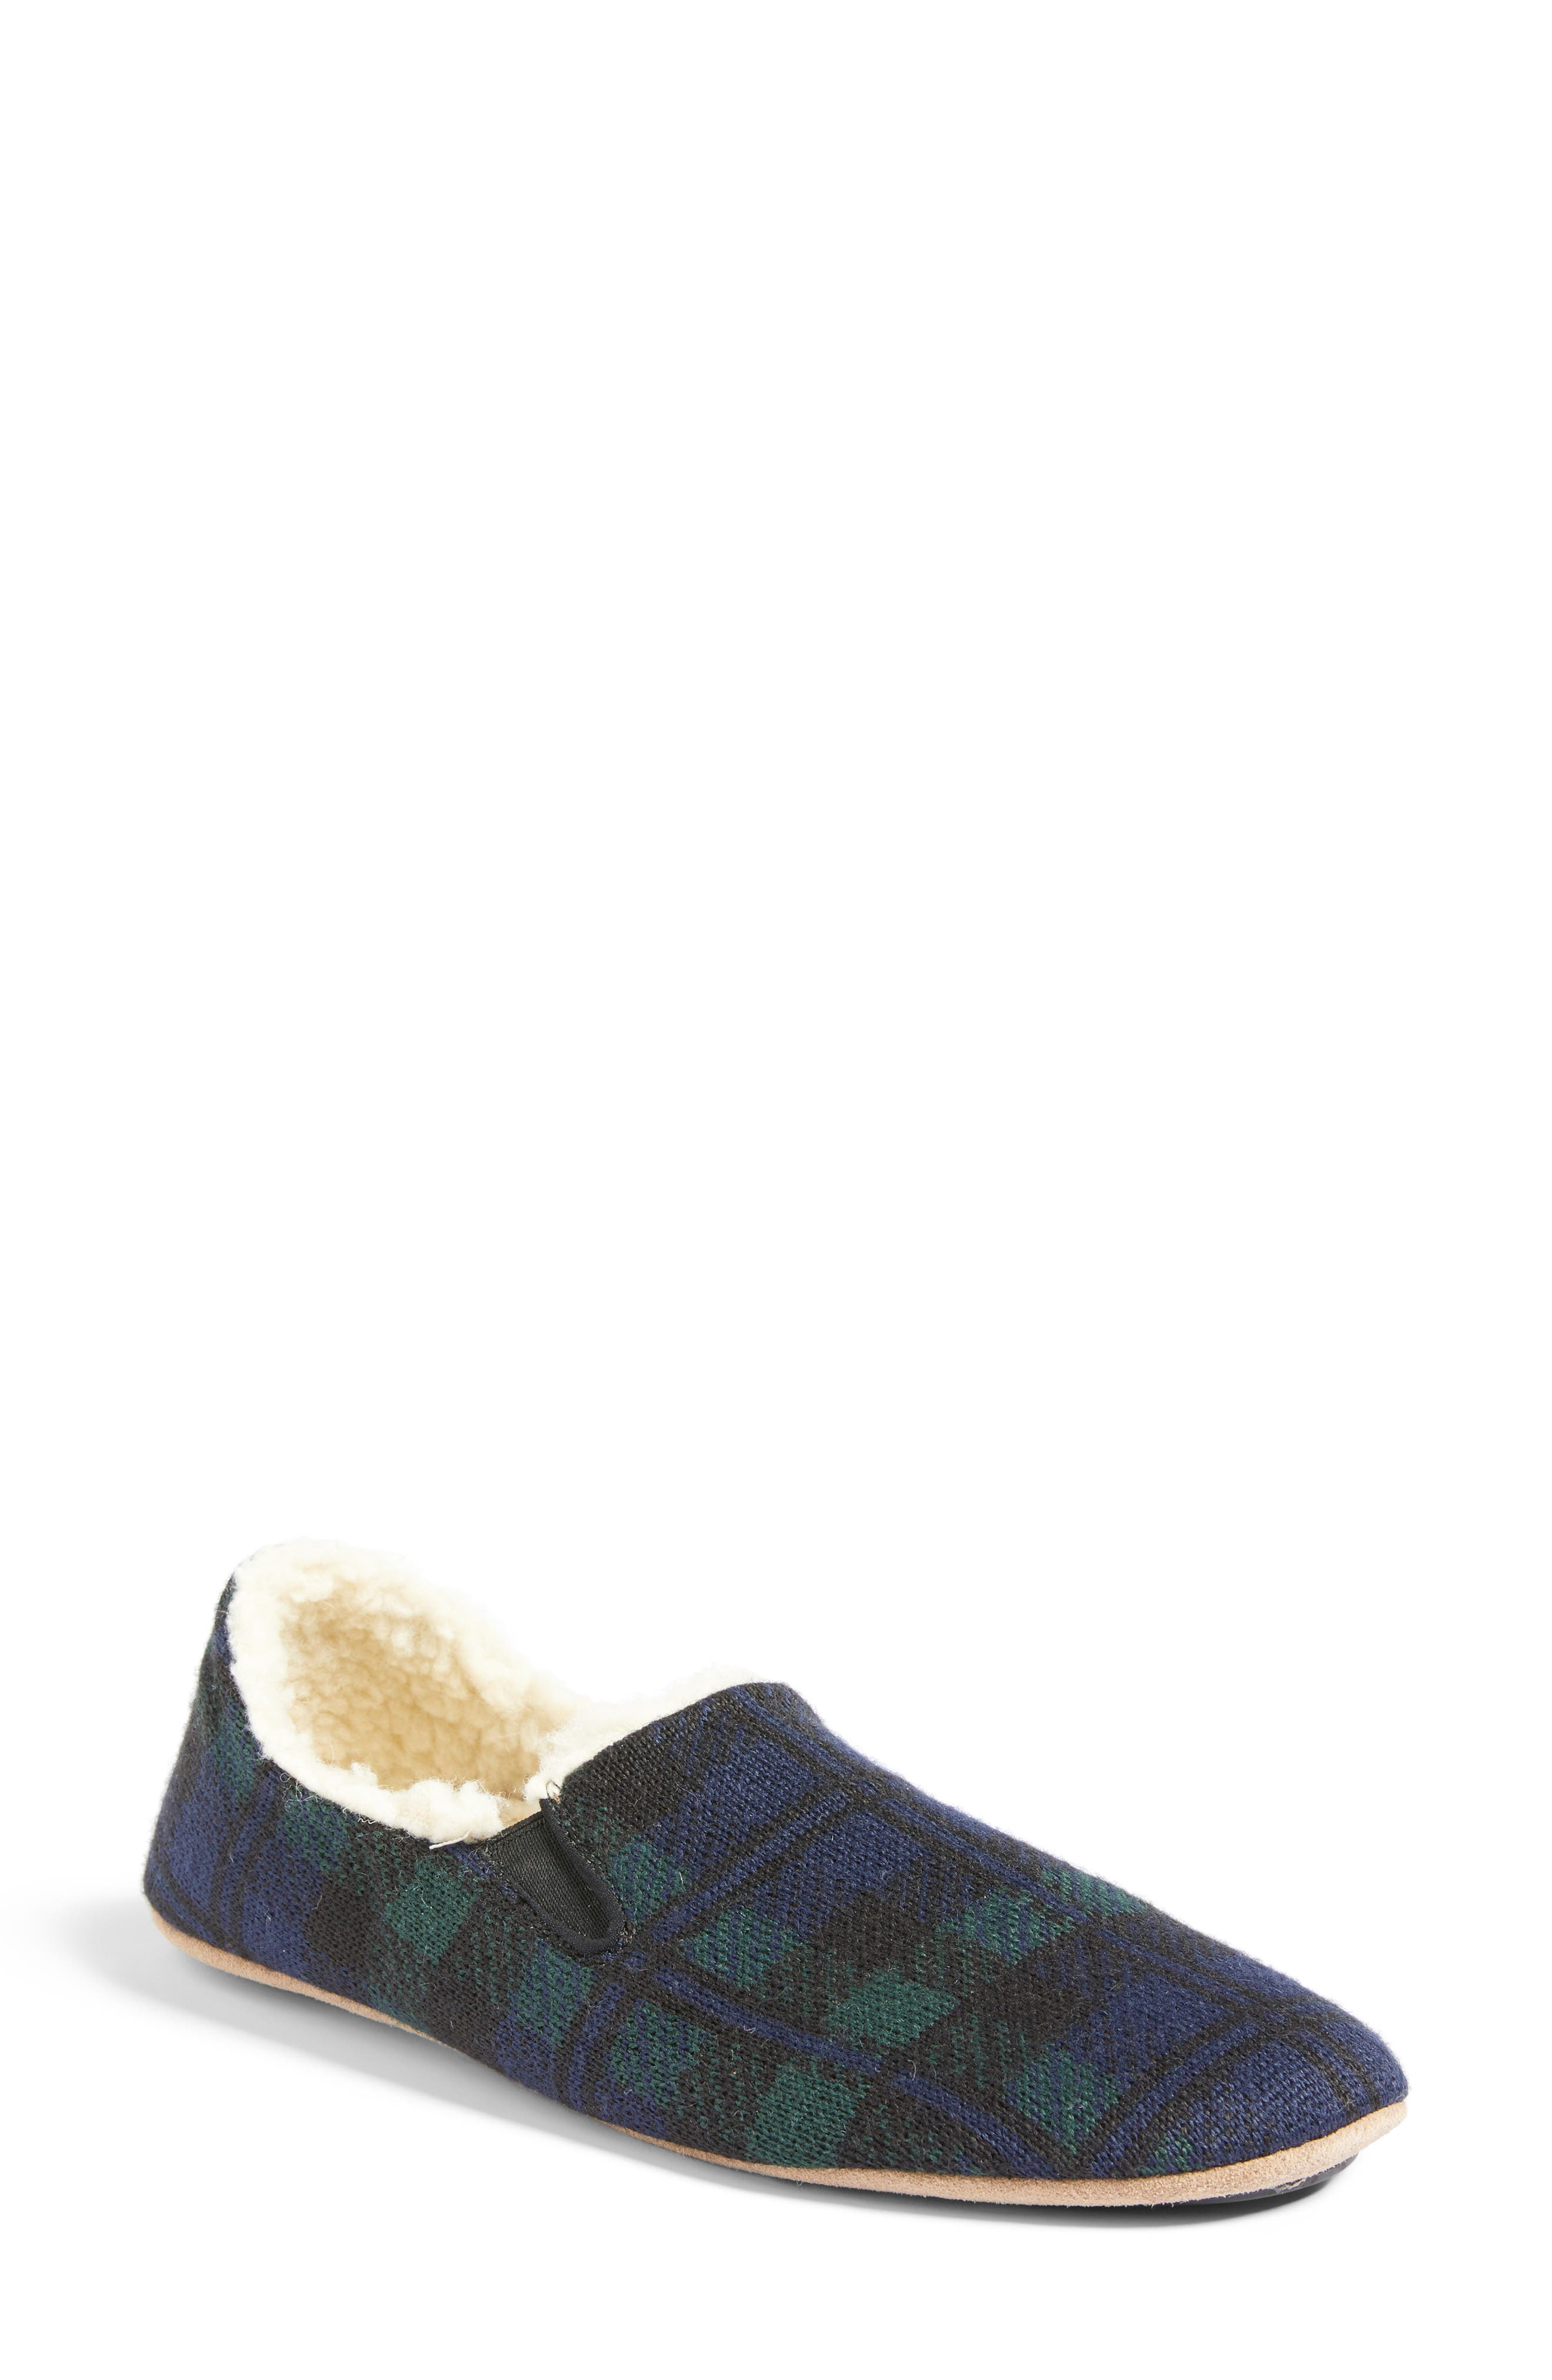 Alternate Image 1 Selected - Pendleton Black Watch Plaid Nomad Slippers